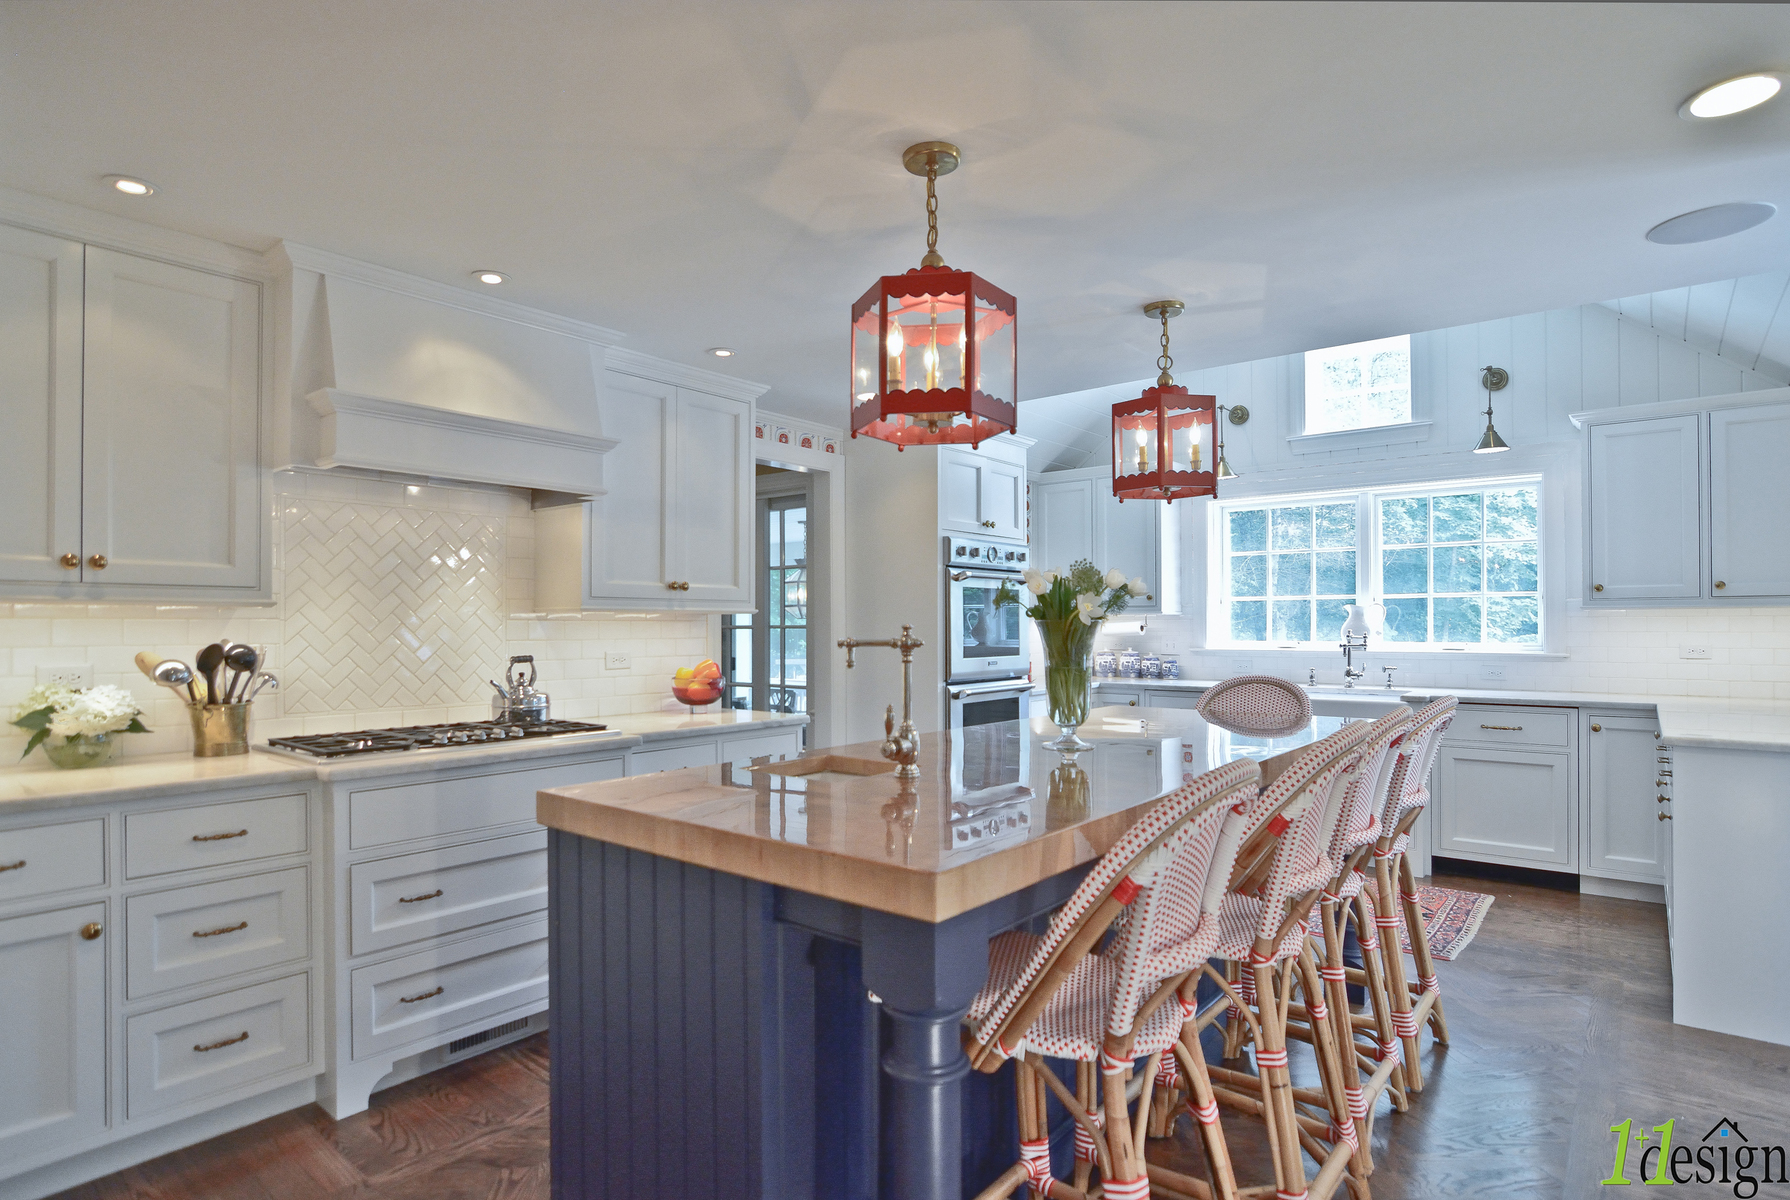 a new colorful kitchen addition / renovation accommodates a large island with seating and ample storage.